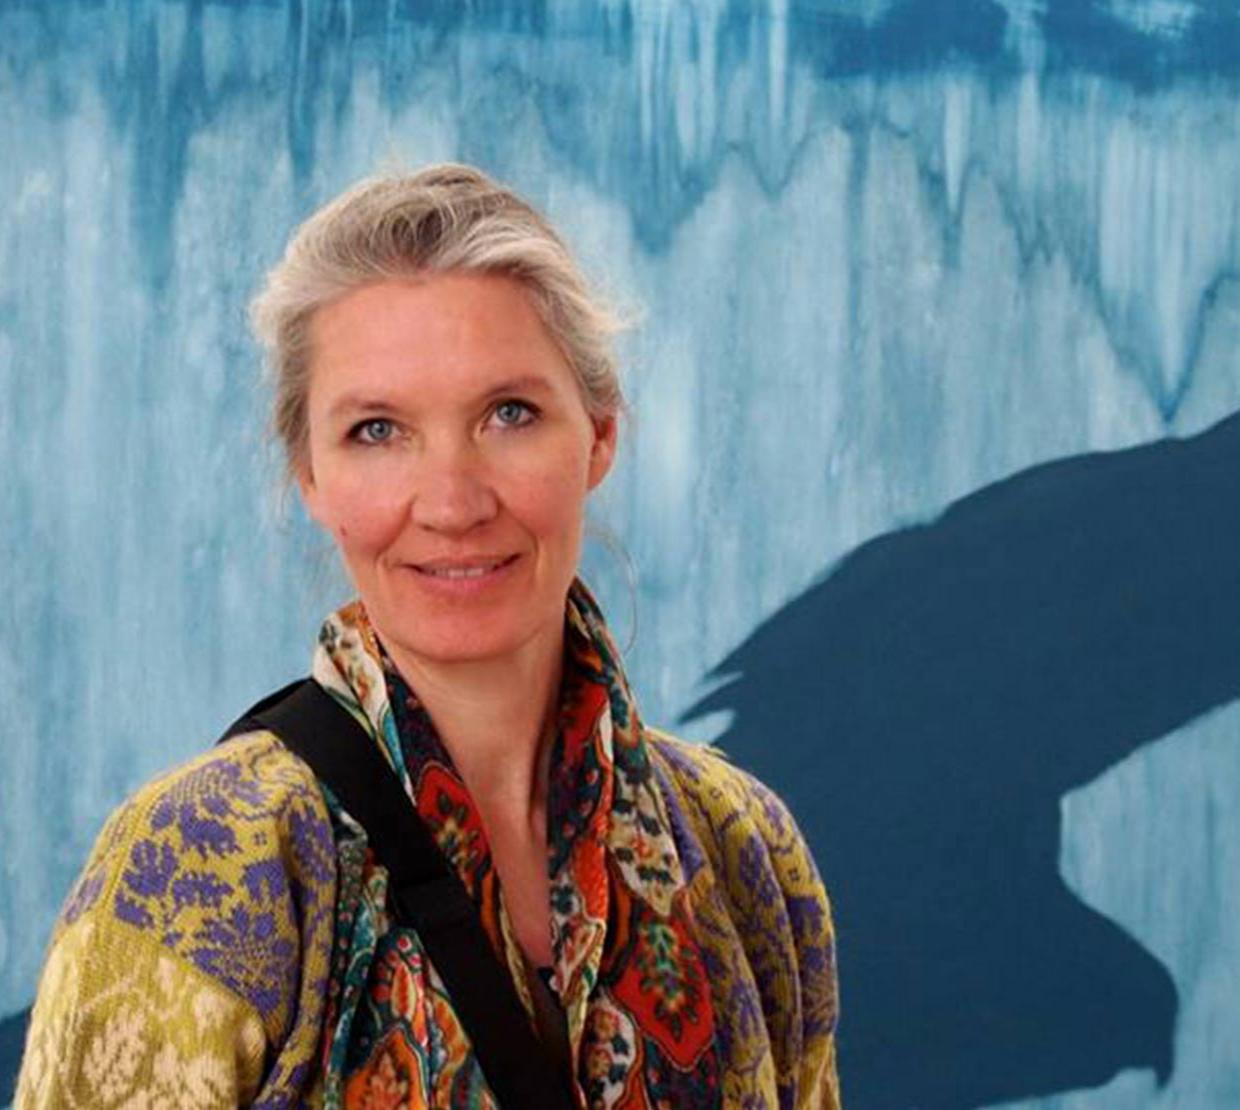 Mai Gehrke in front of blue painted backdrop